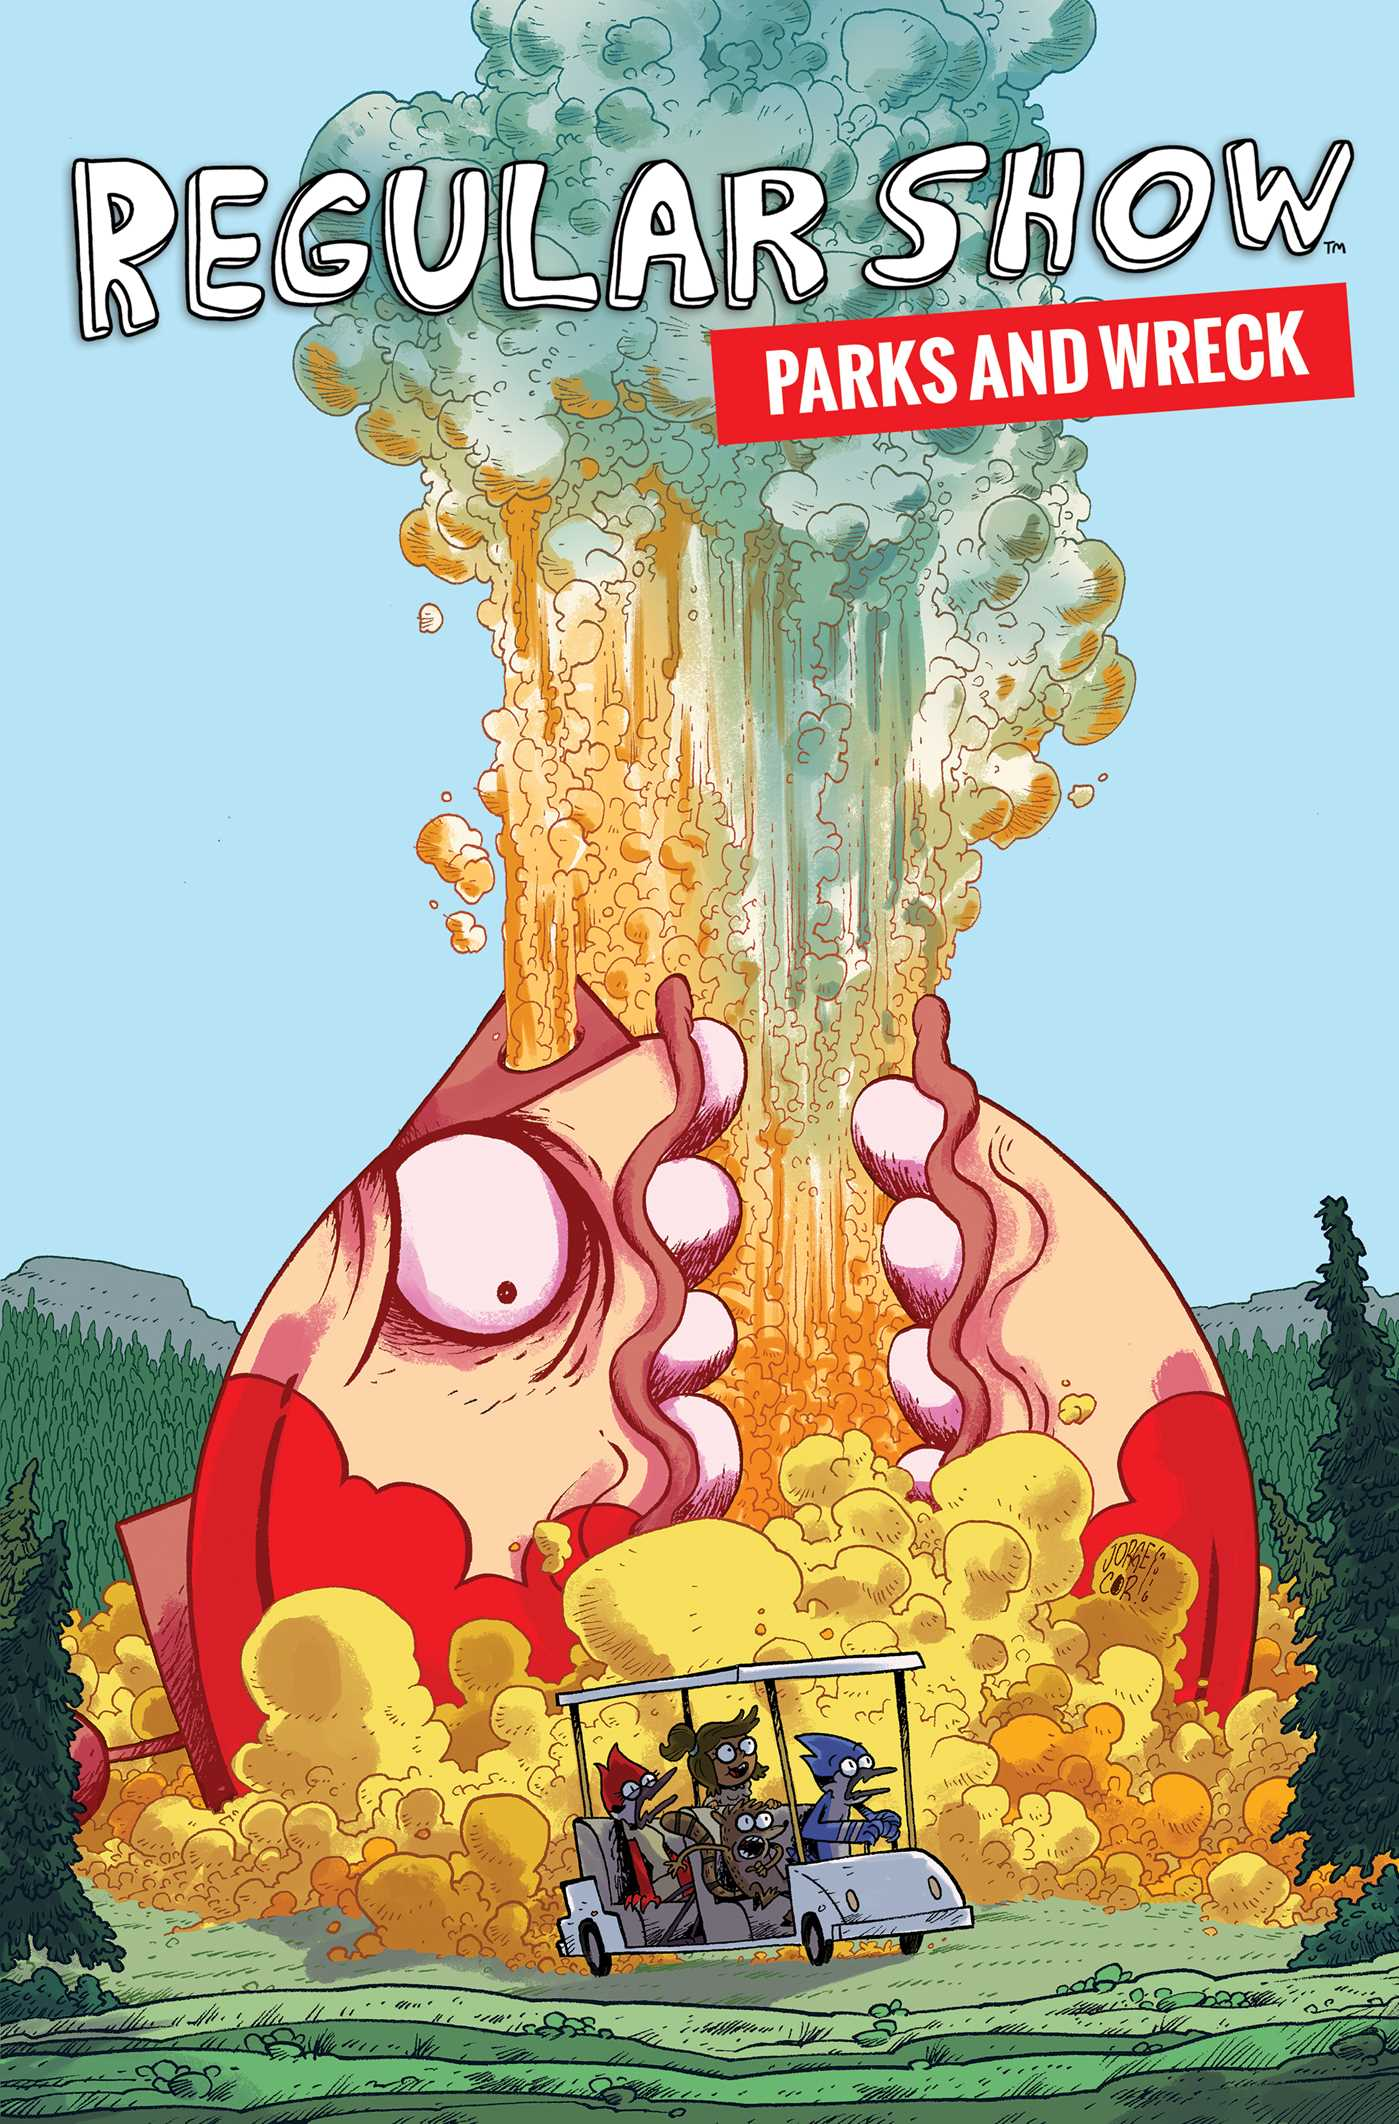 Regular show parks and wreck 9781684150427 hr